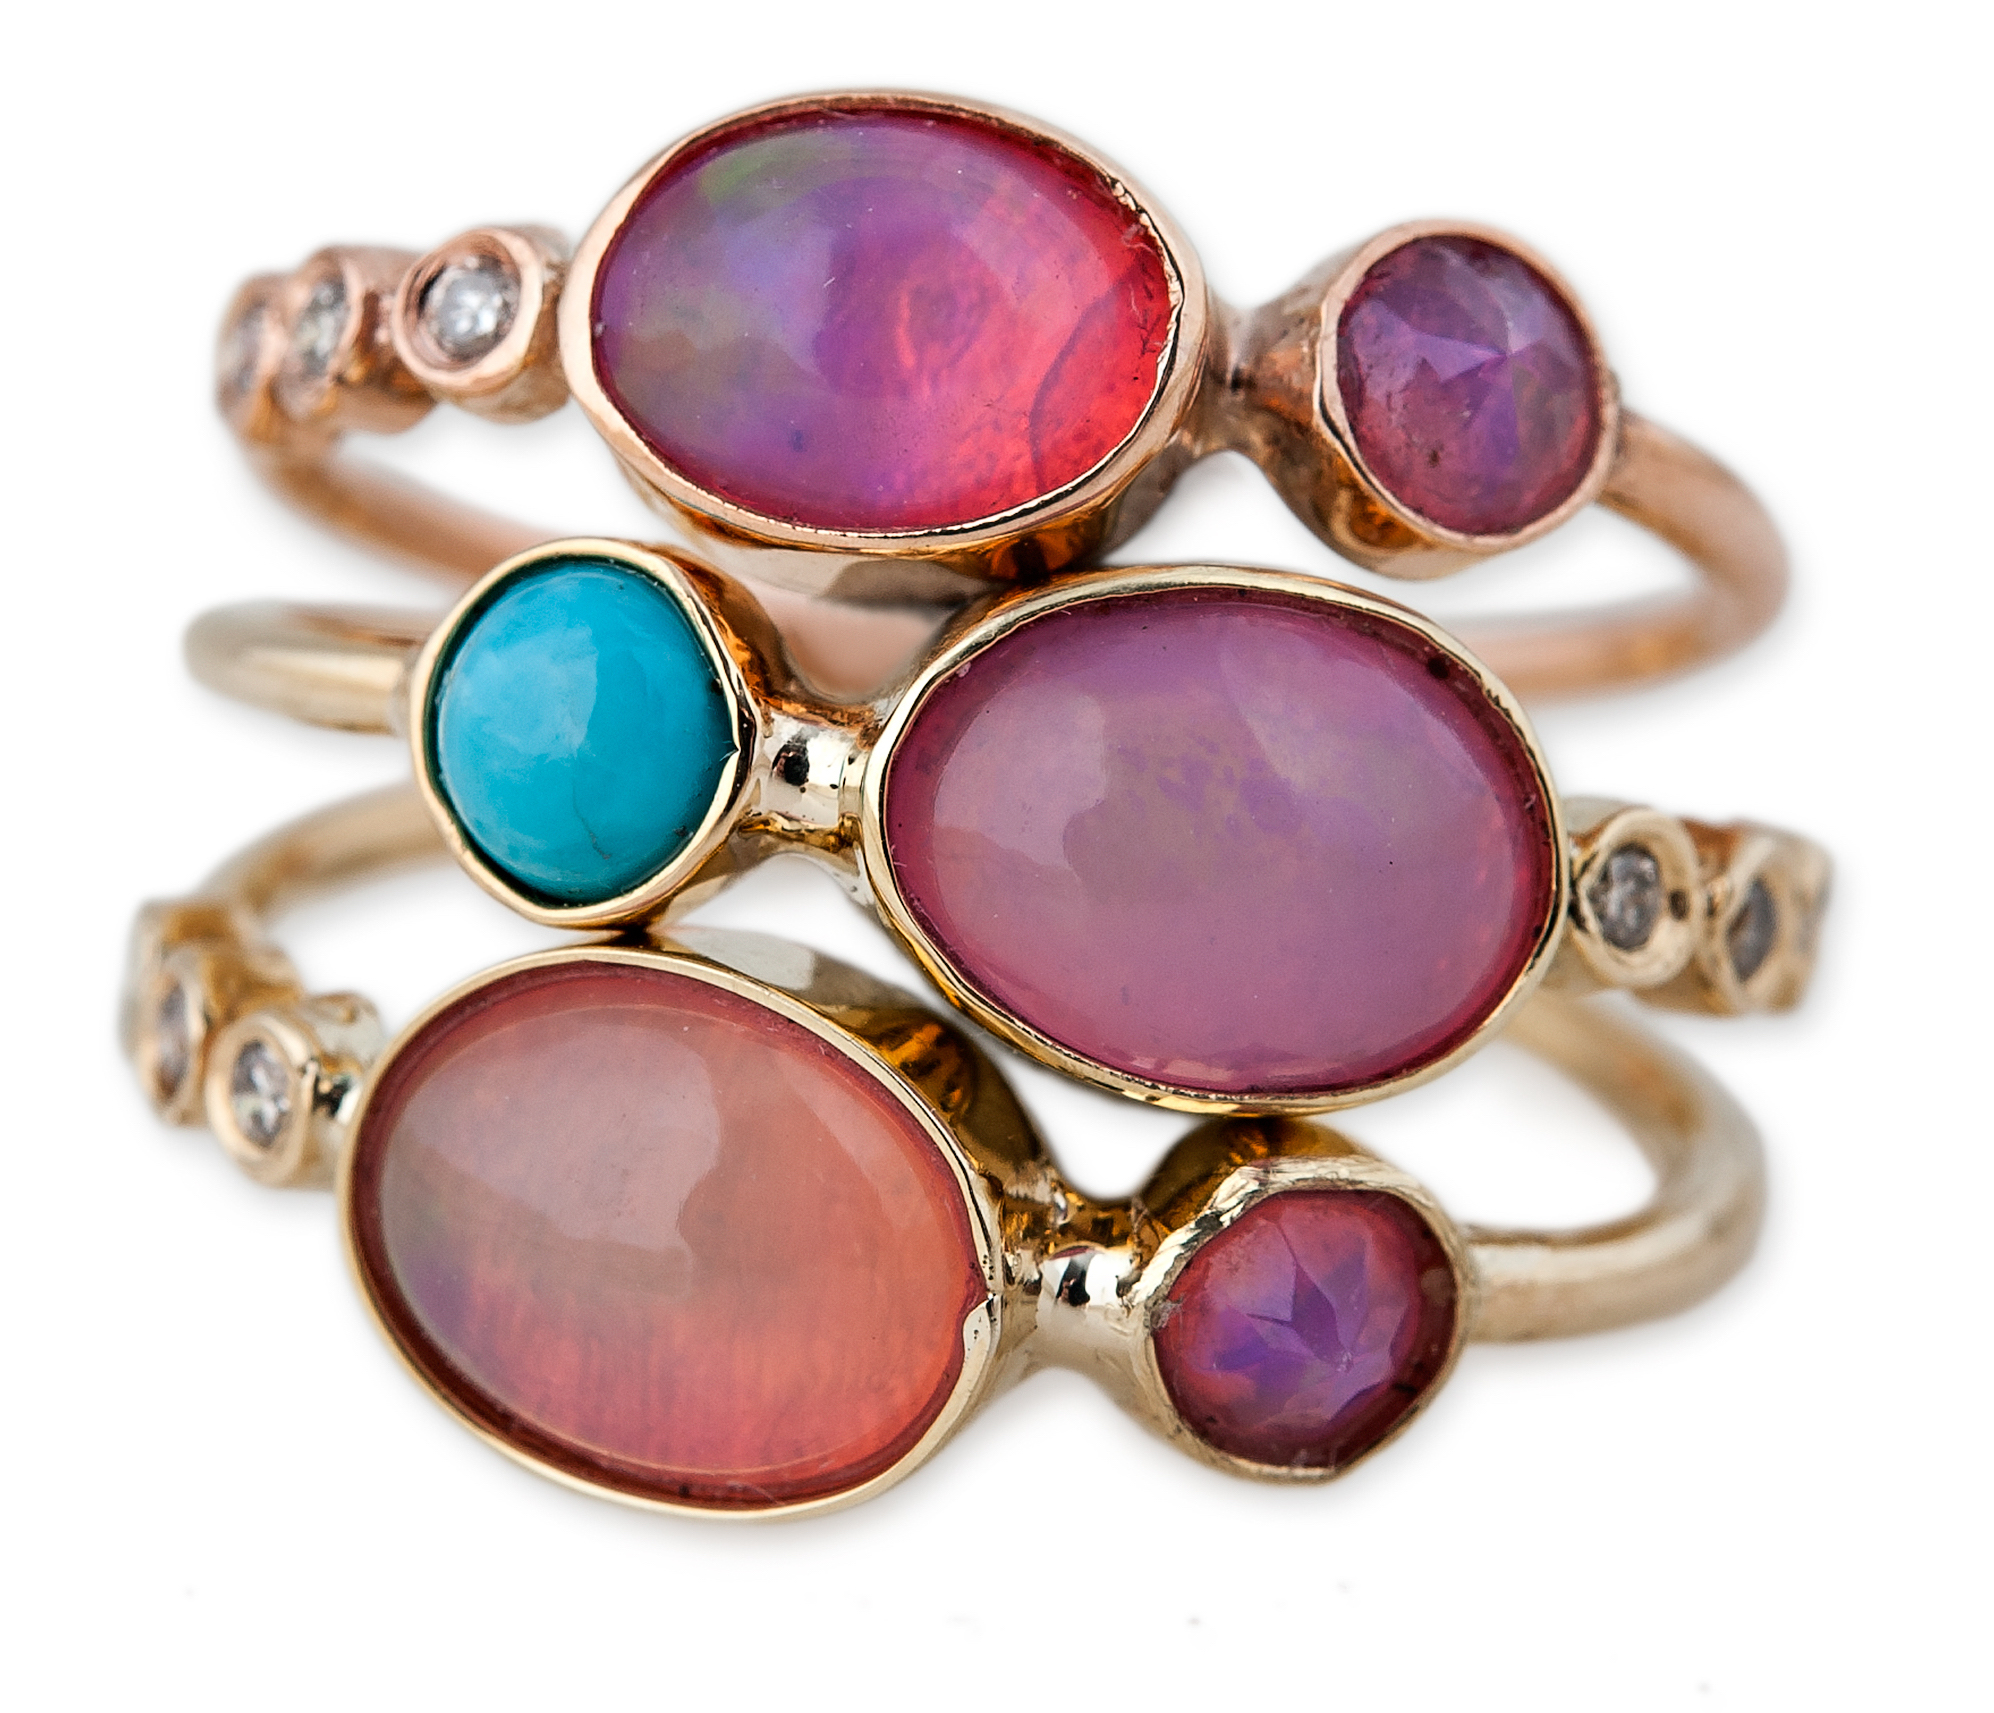 Jacquie Aiche stacking rings | JCK On Your Market